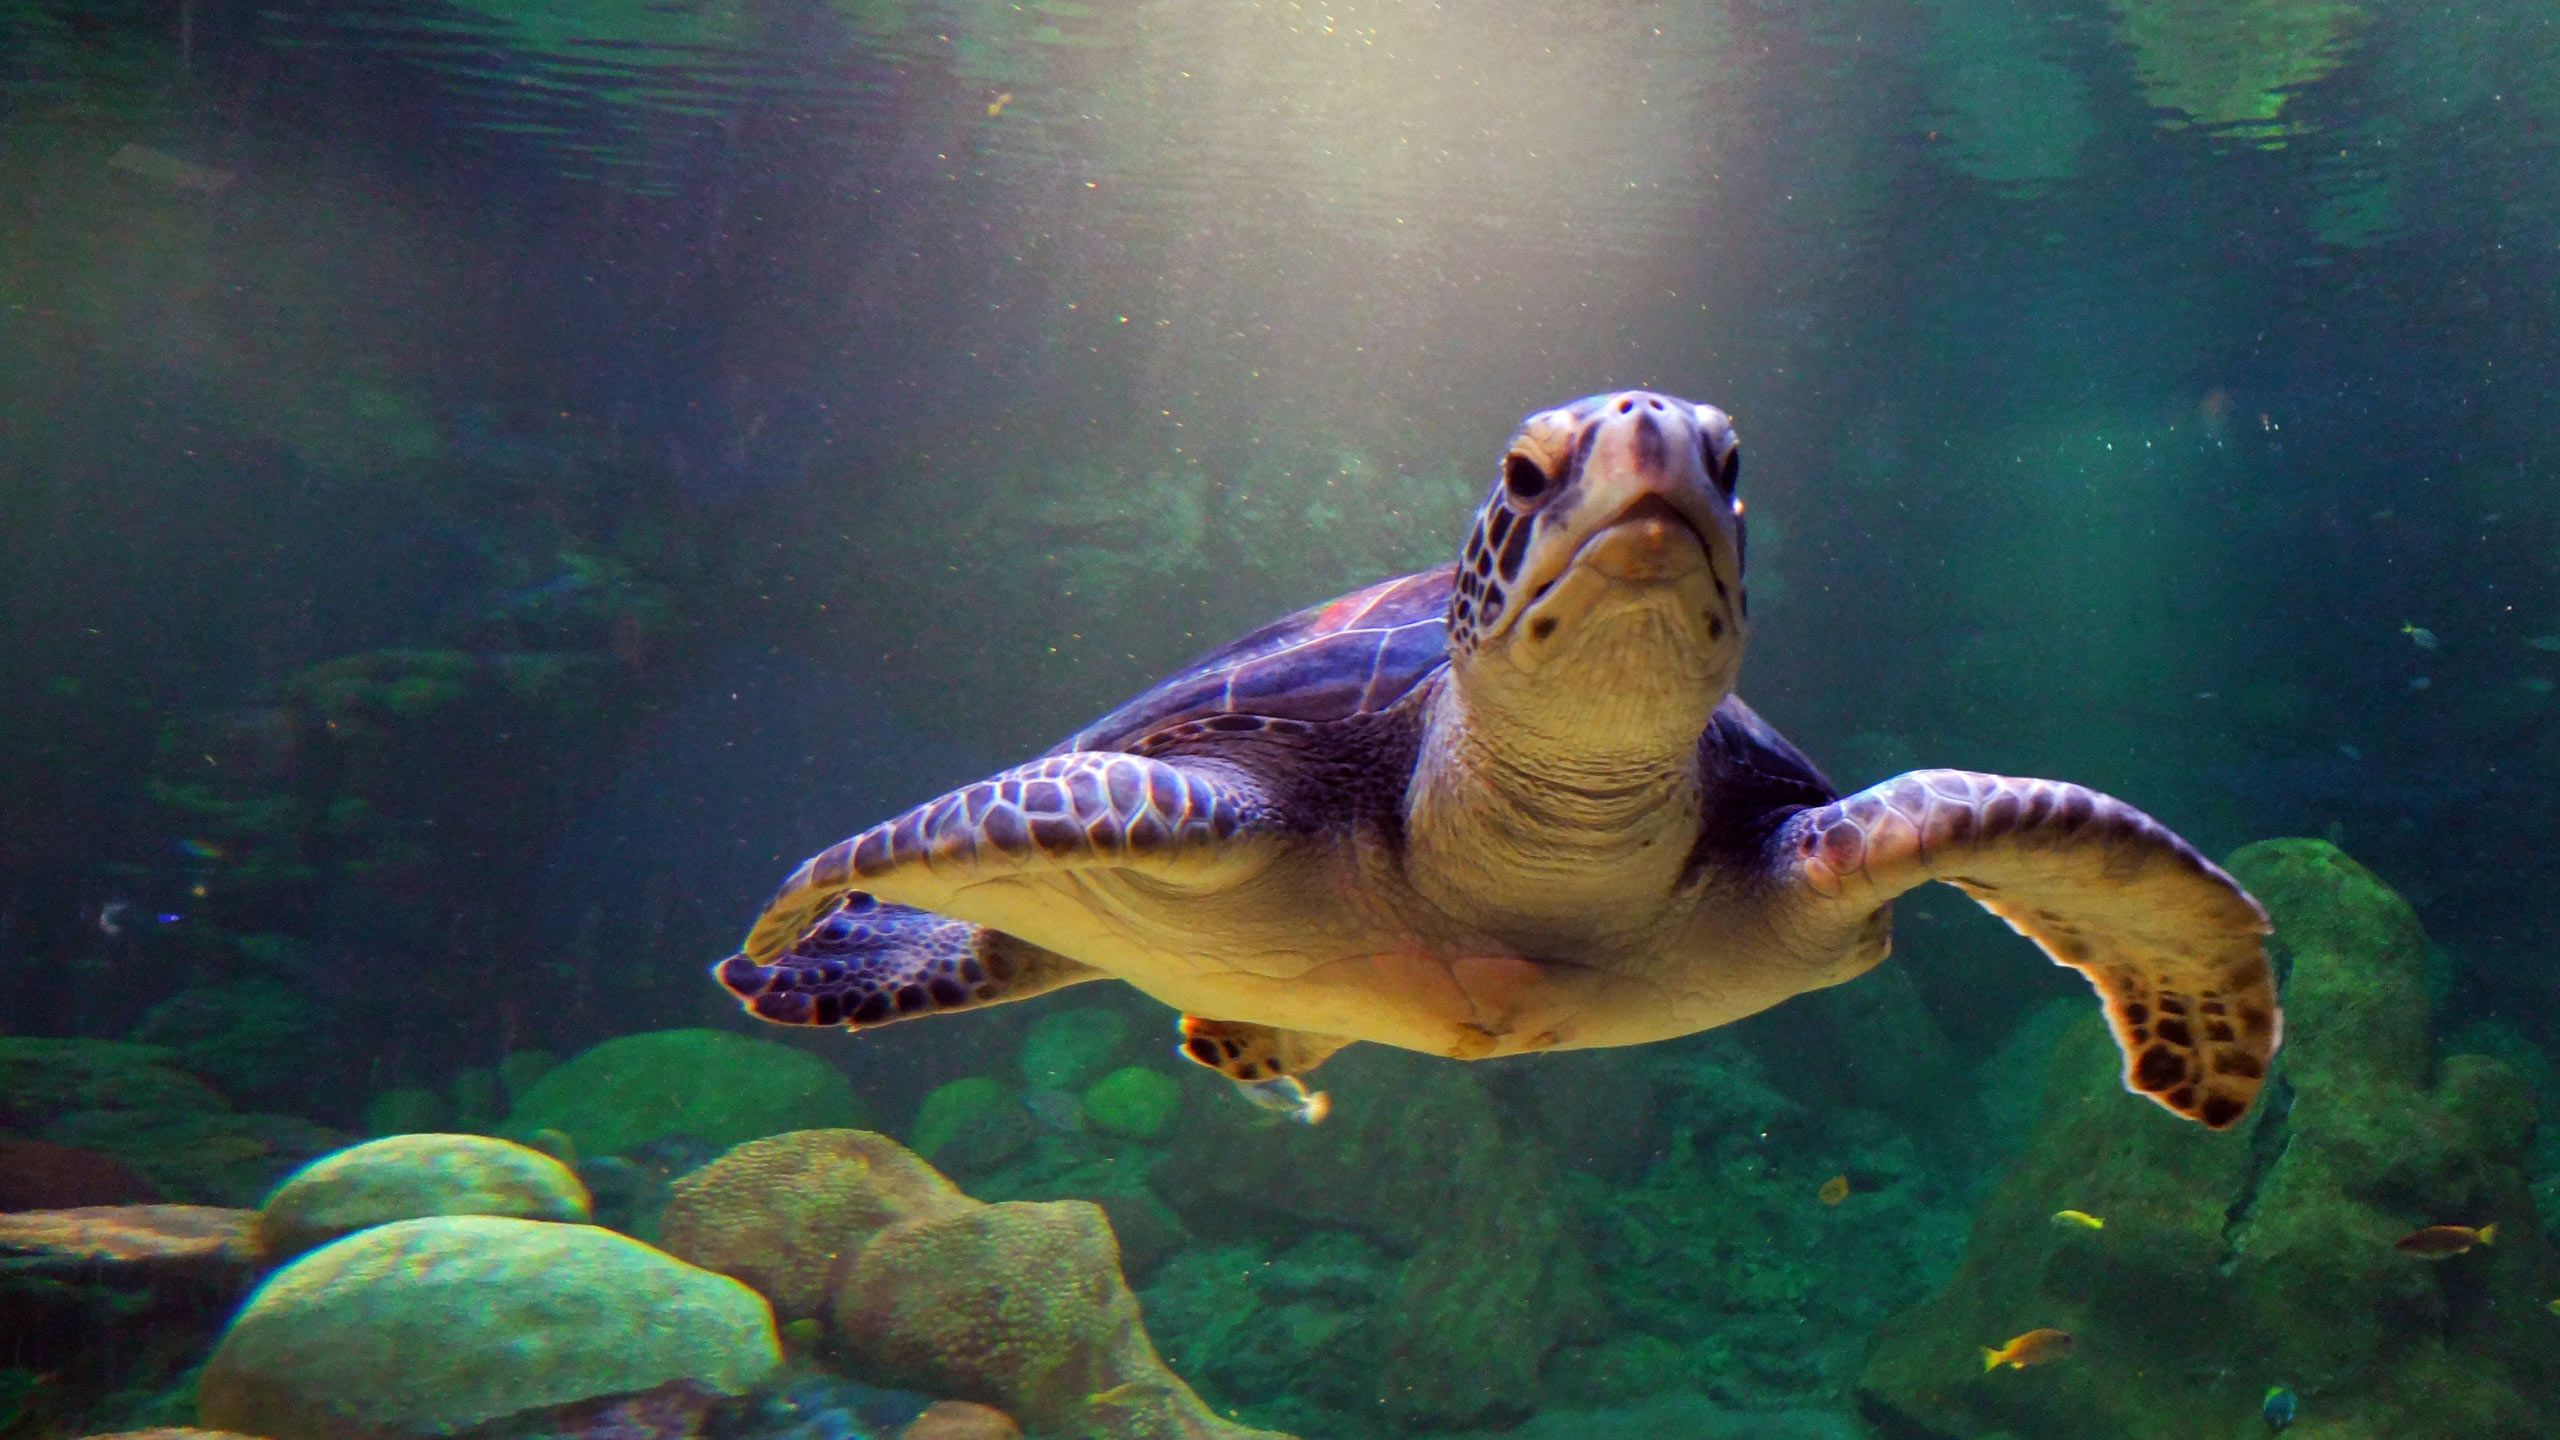 2560x1440 Turtle Wallpaper Image Group (31+)